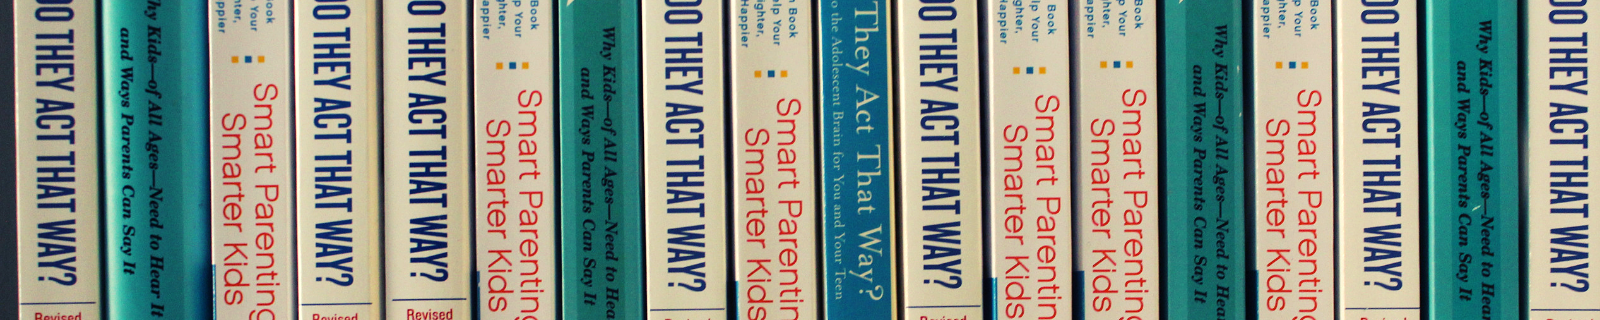 Dr. David Walsh books on bookshelf including Why Do They Act That Way